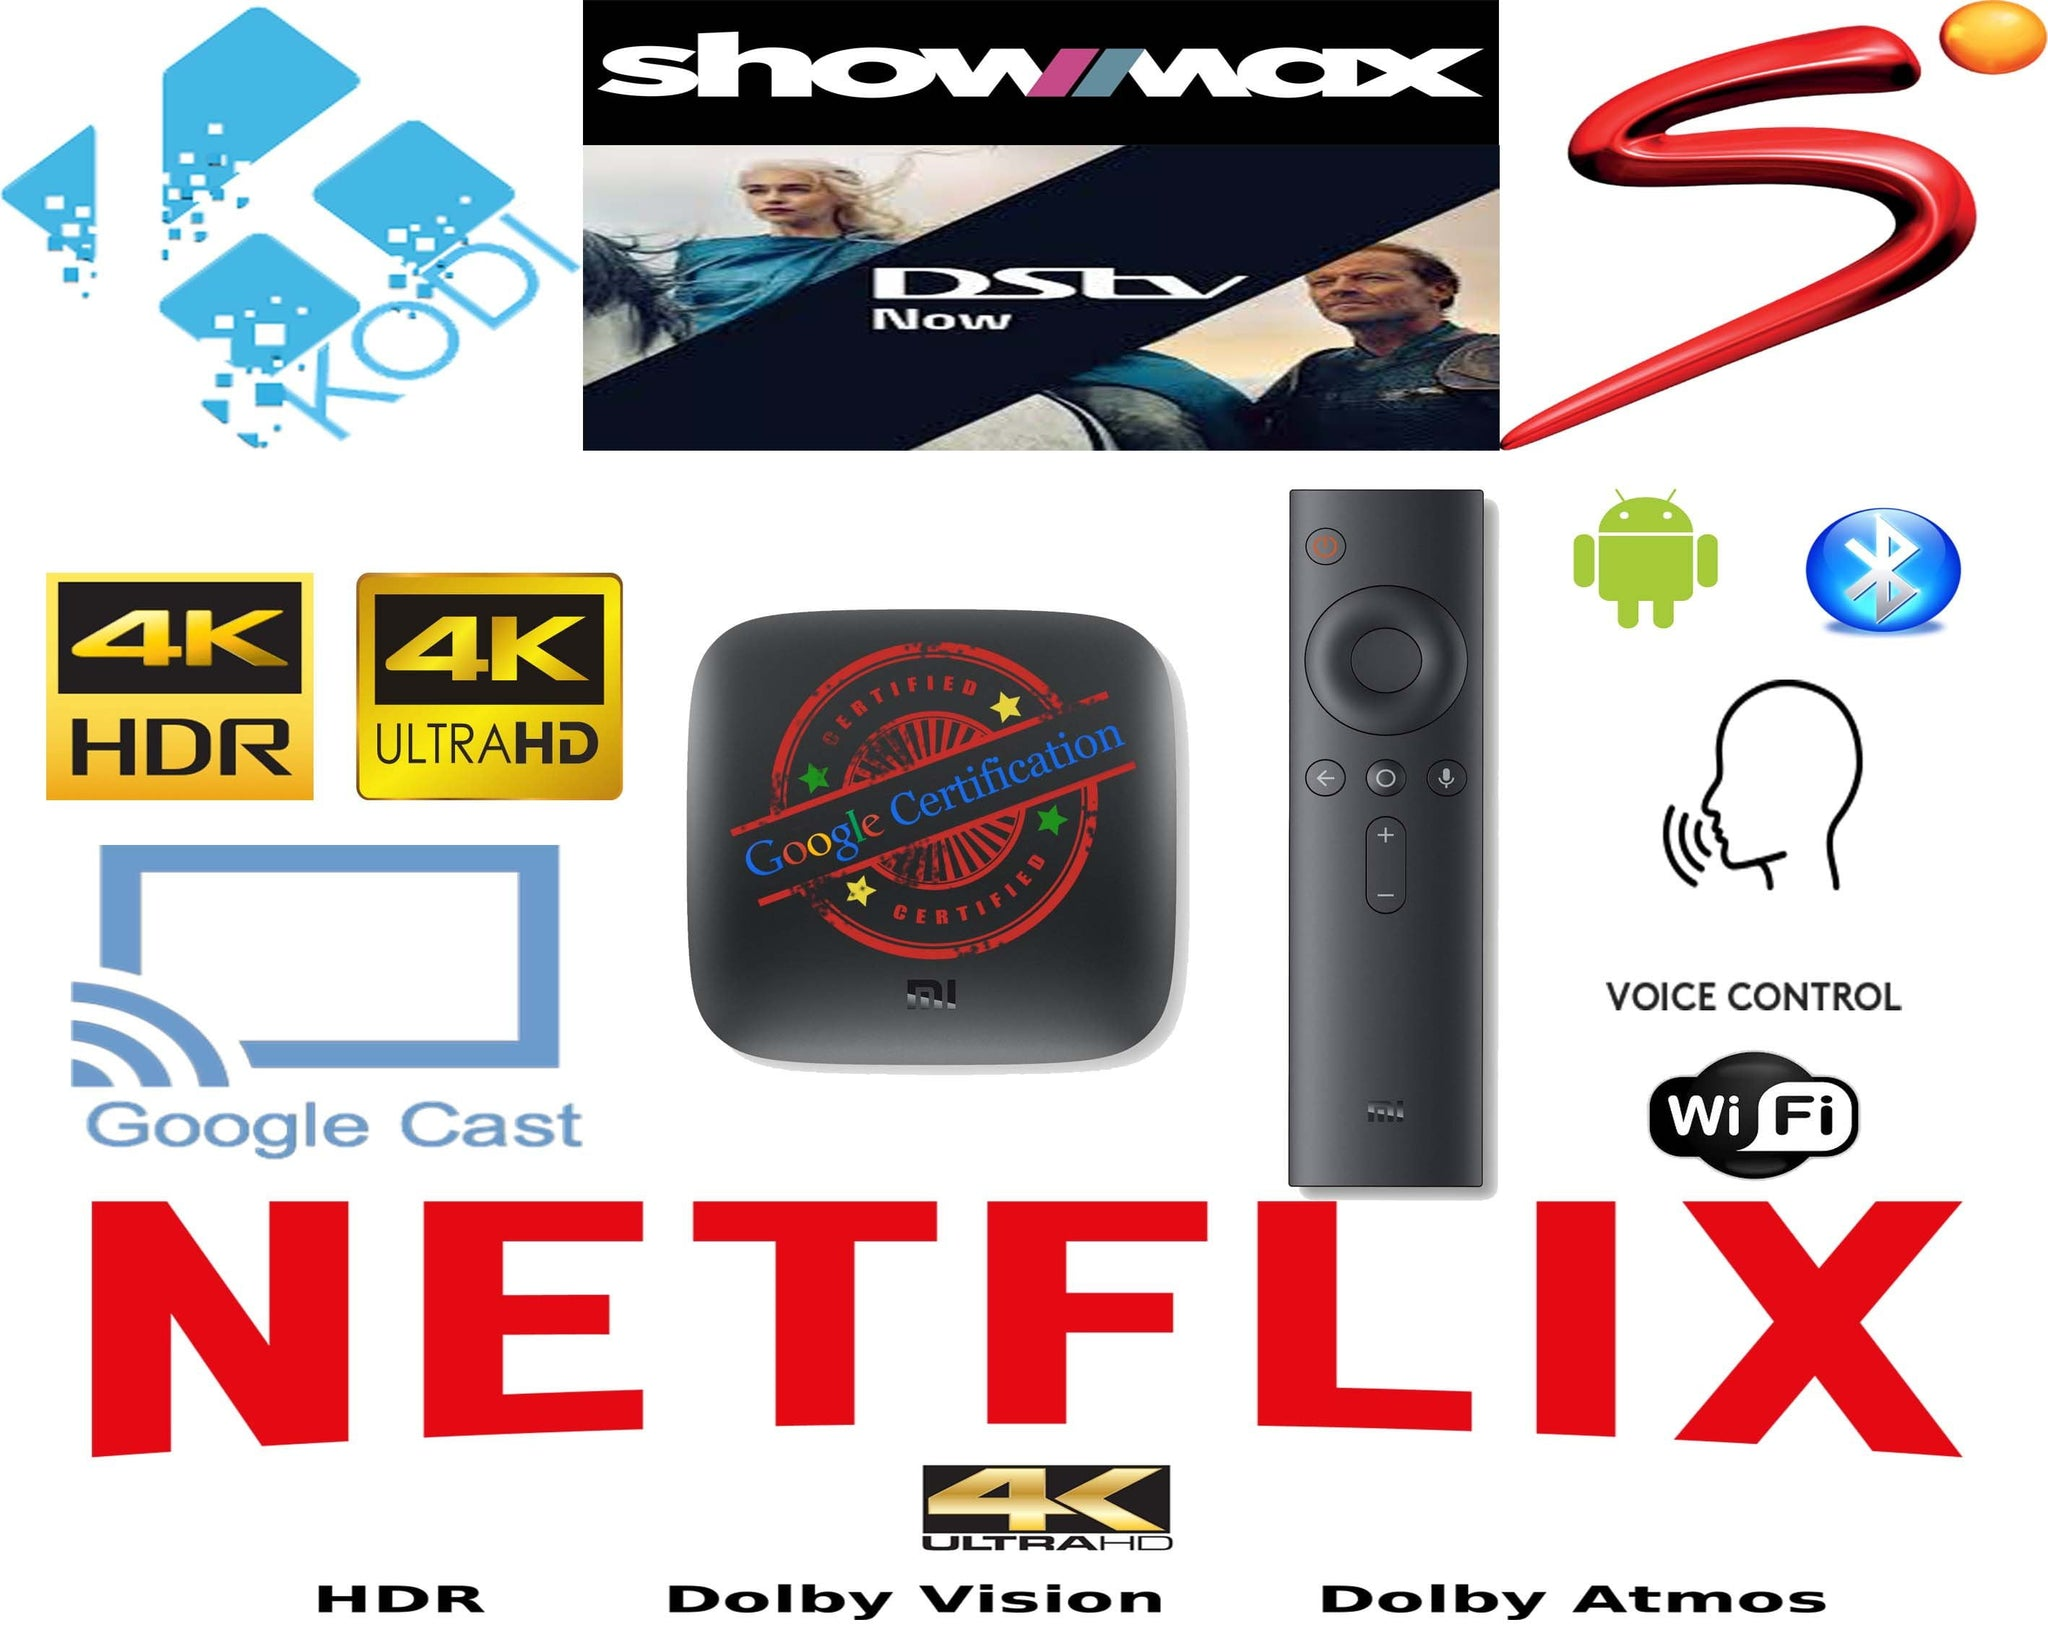 Xiaomi Android TV Box to watch DSTV now , NetFlix, ShowMax, YouTube